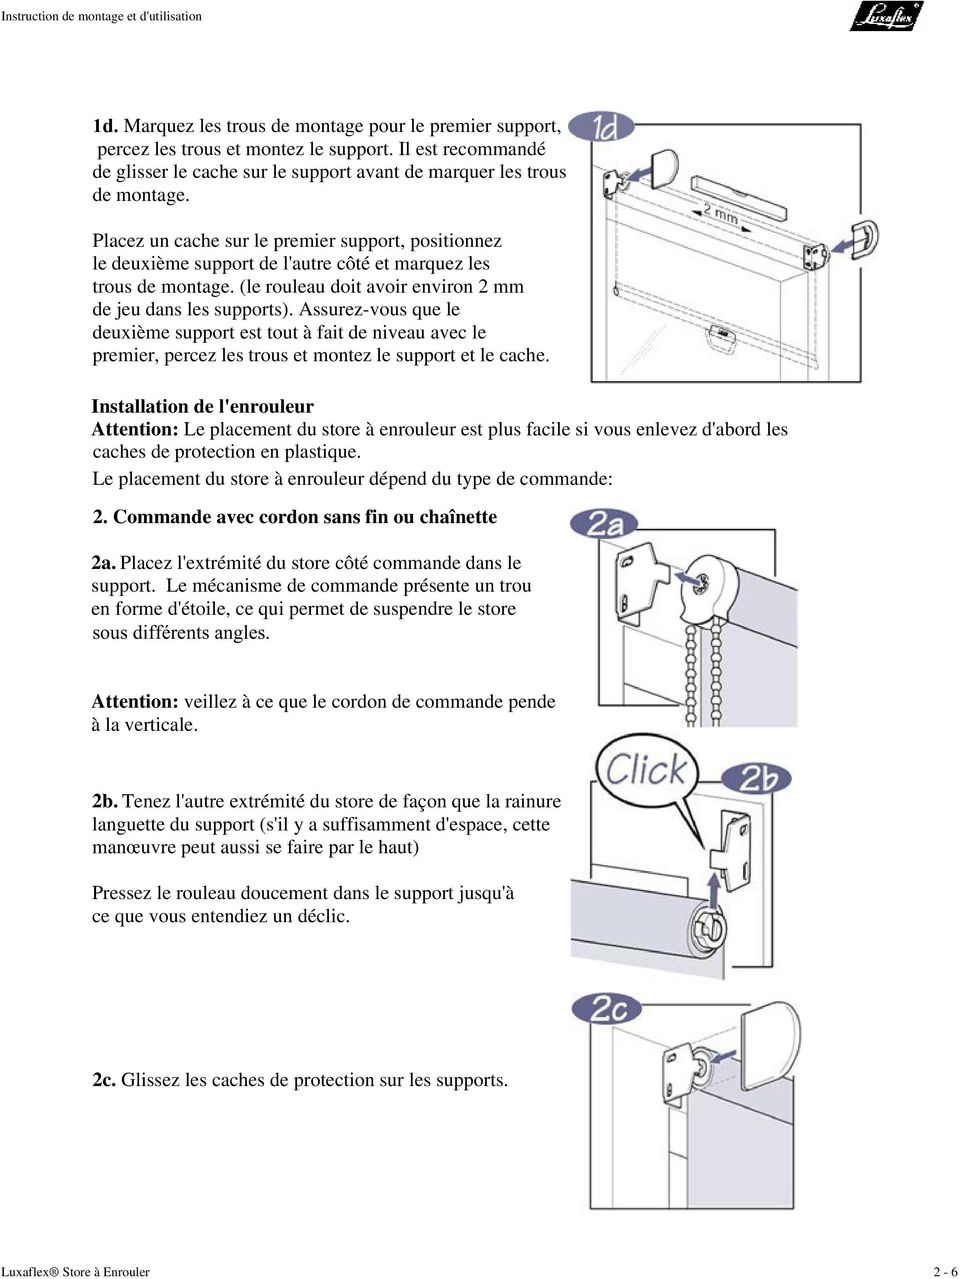 instruction de montage et d 39 utilisation luxaflex store enrouler pdf. Black Bedroom Furniture Sets. Home Design Ideas